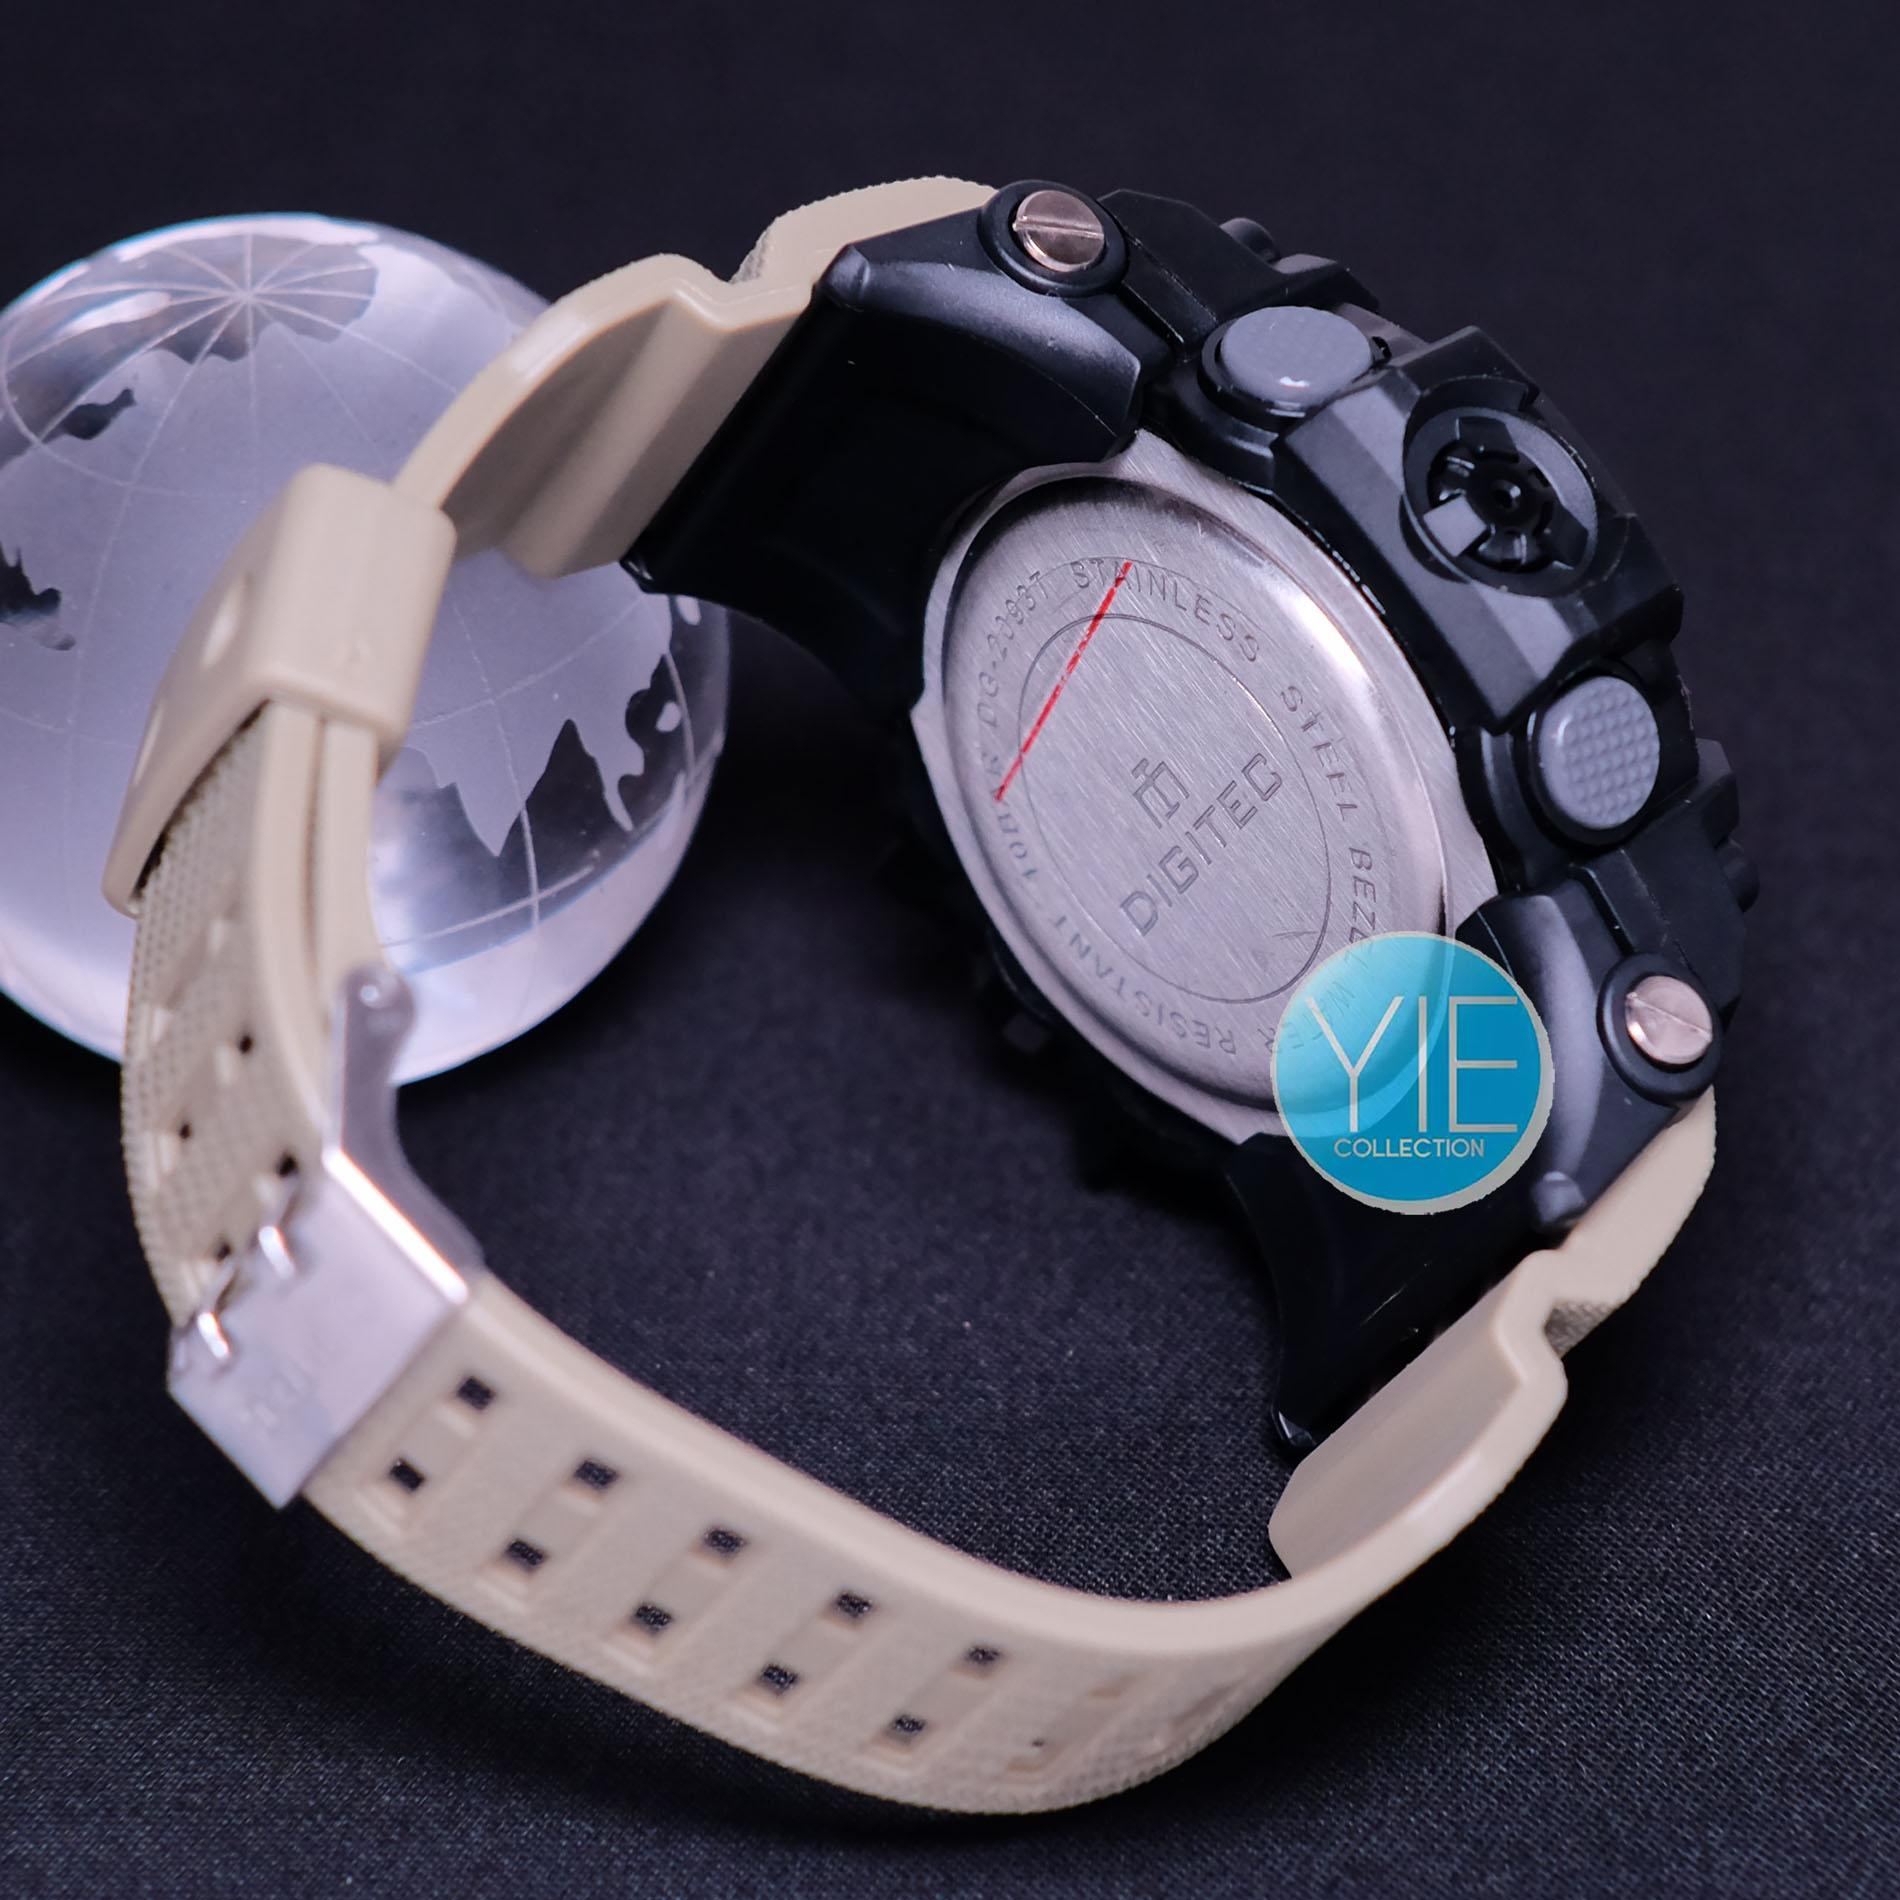 Detail Gambar Digitec Jam Tangan Sport Pria DG 2093 T Dual Time Original Anti Air -